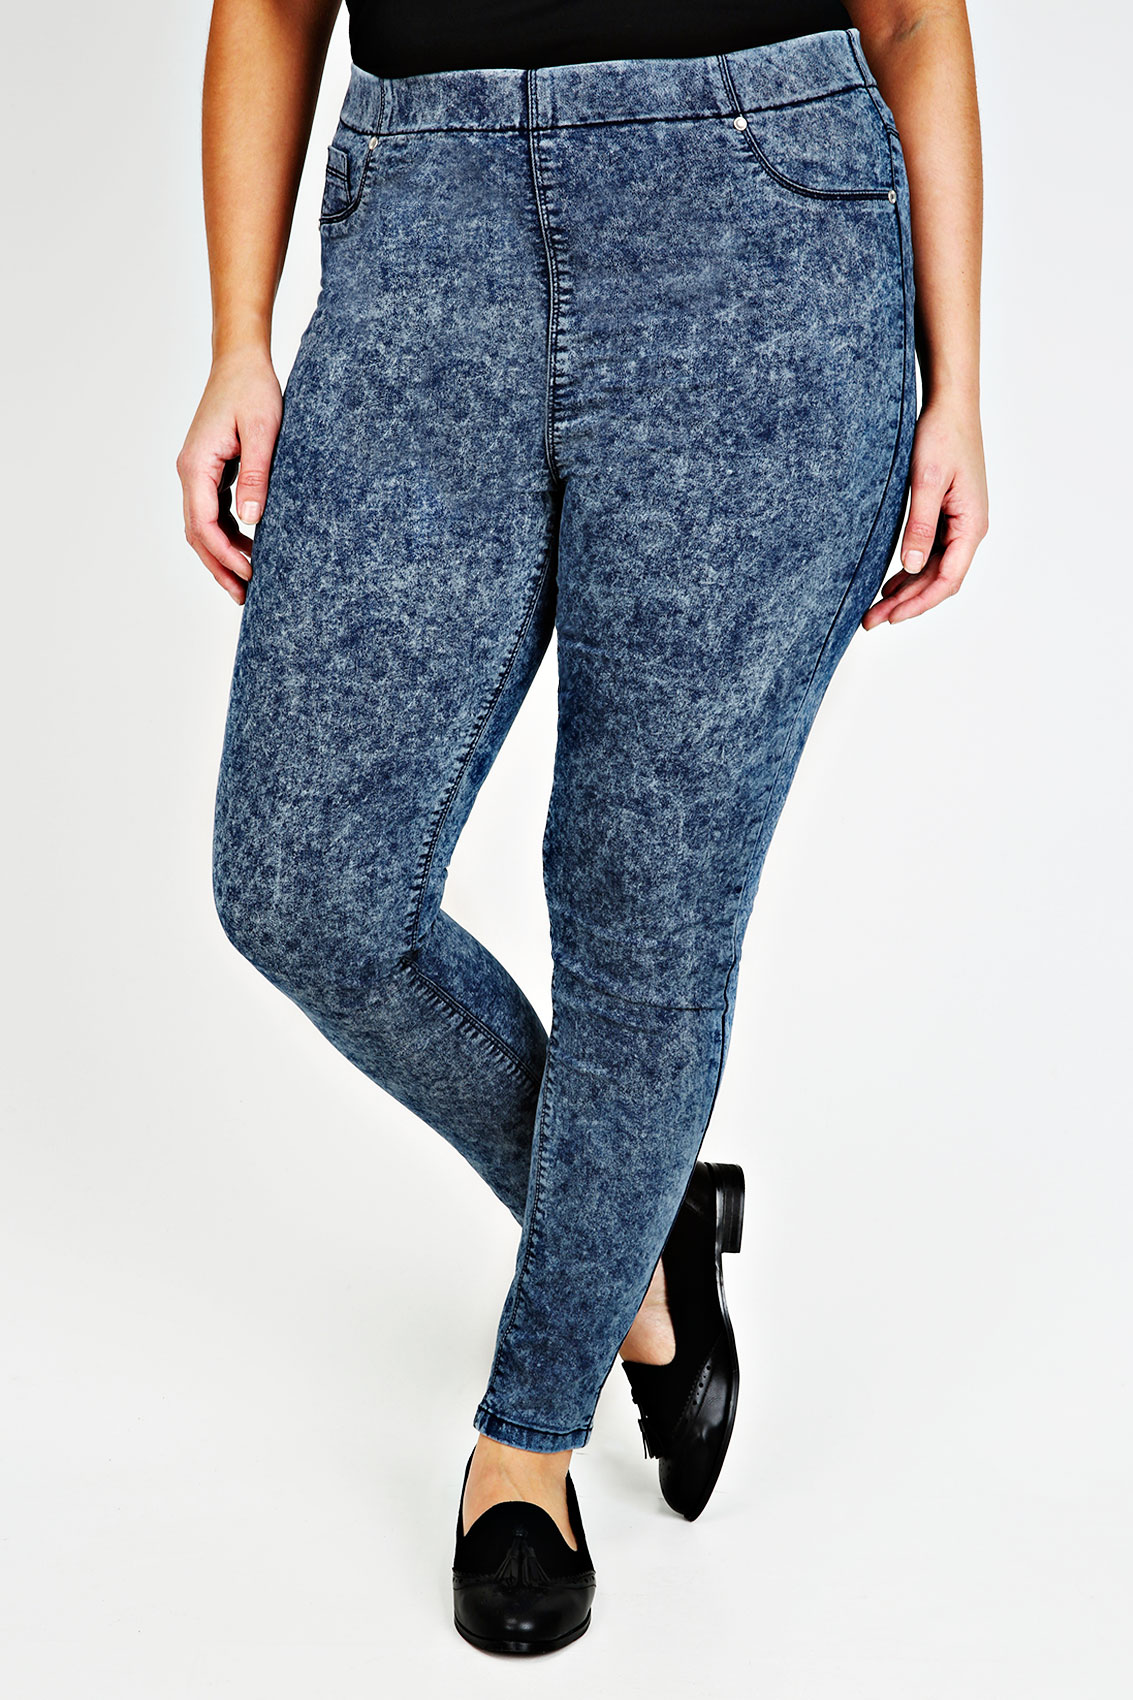 blue jeggings A stretchy and comfortable alternative to jeans, our blue jeggings and denim leggings are perfect for everyday wear. Choose from dark blue, light blue and navy jeggings that effortlessly pair with tunics and day dresses for an on-trend look.